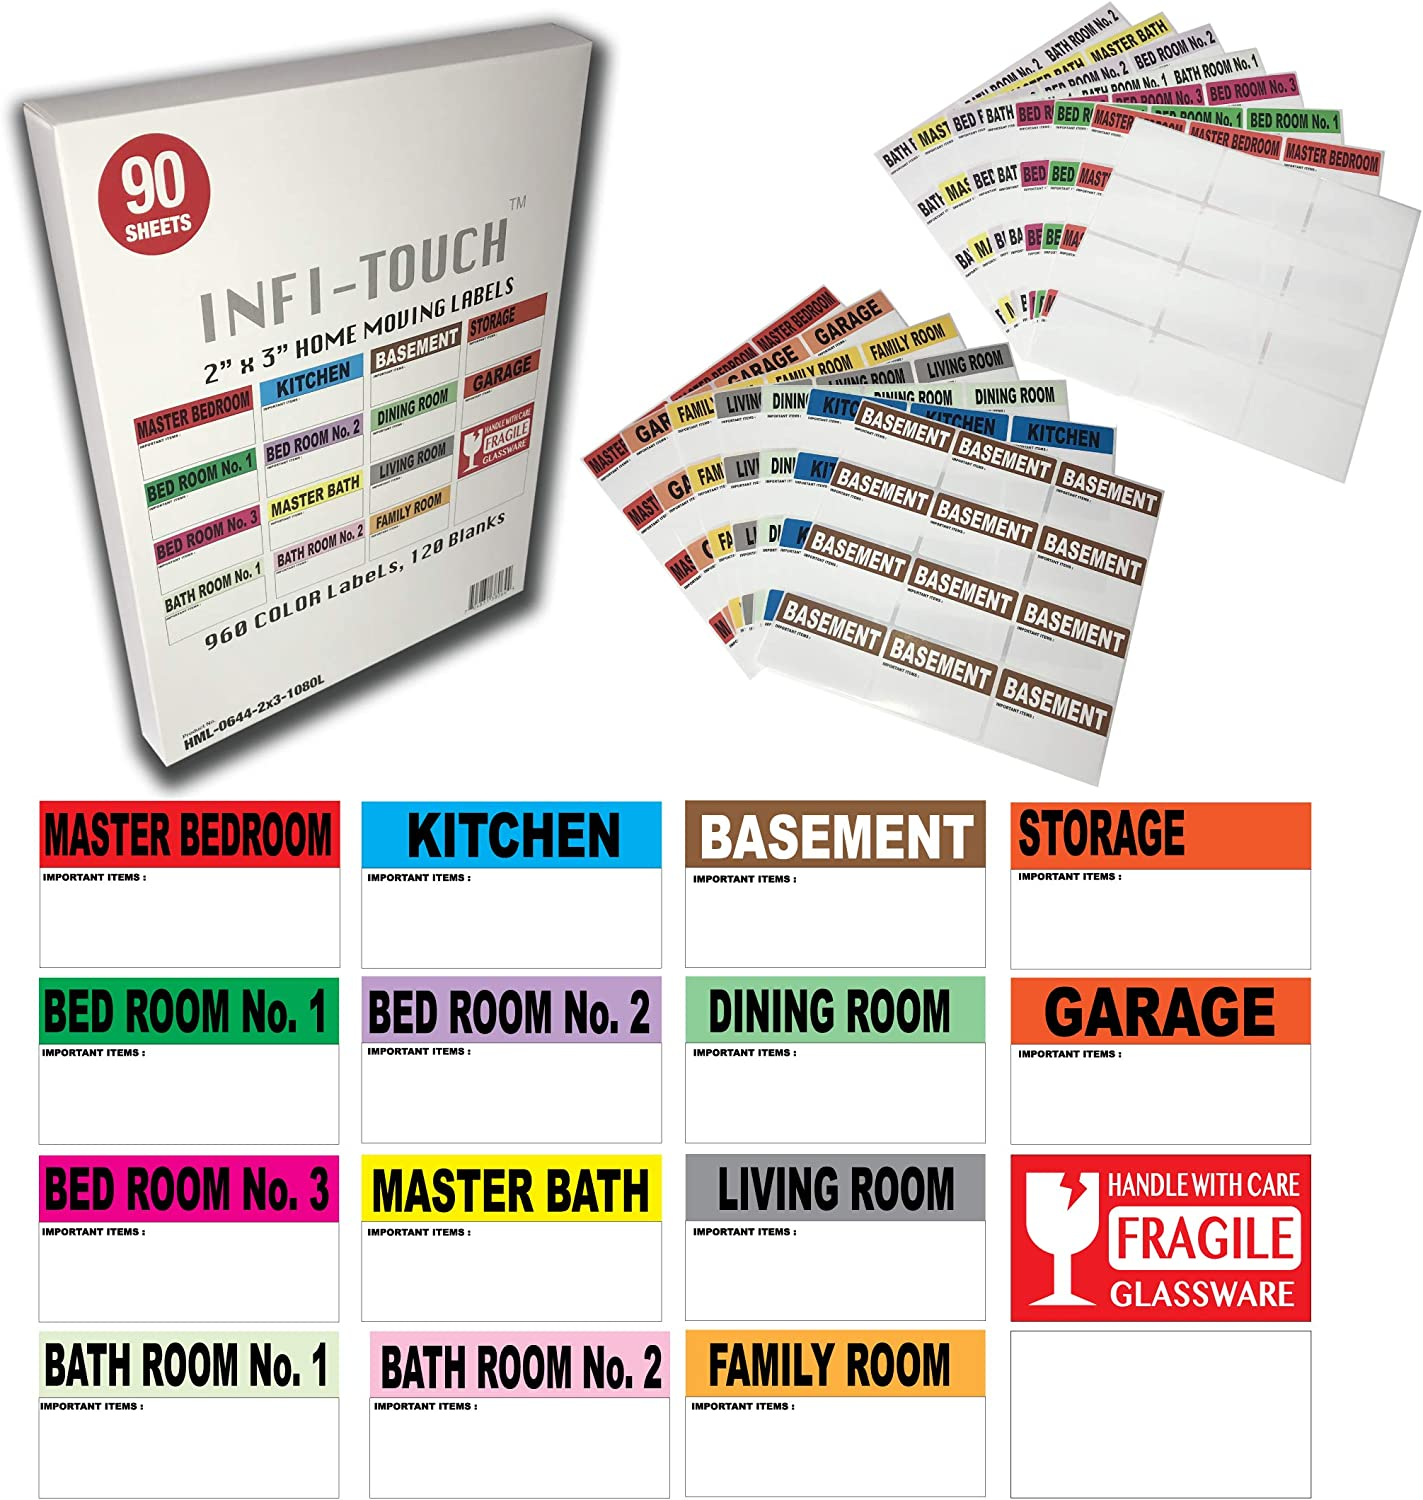 "Infi-Touch 1080 Large Moving Labels -960 Color Coded, 120 Blanks, 90 Sheets –12 Labels Par Sheet- with Fragile Stickers |2"" x 3"" Size